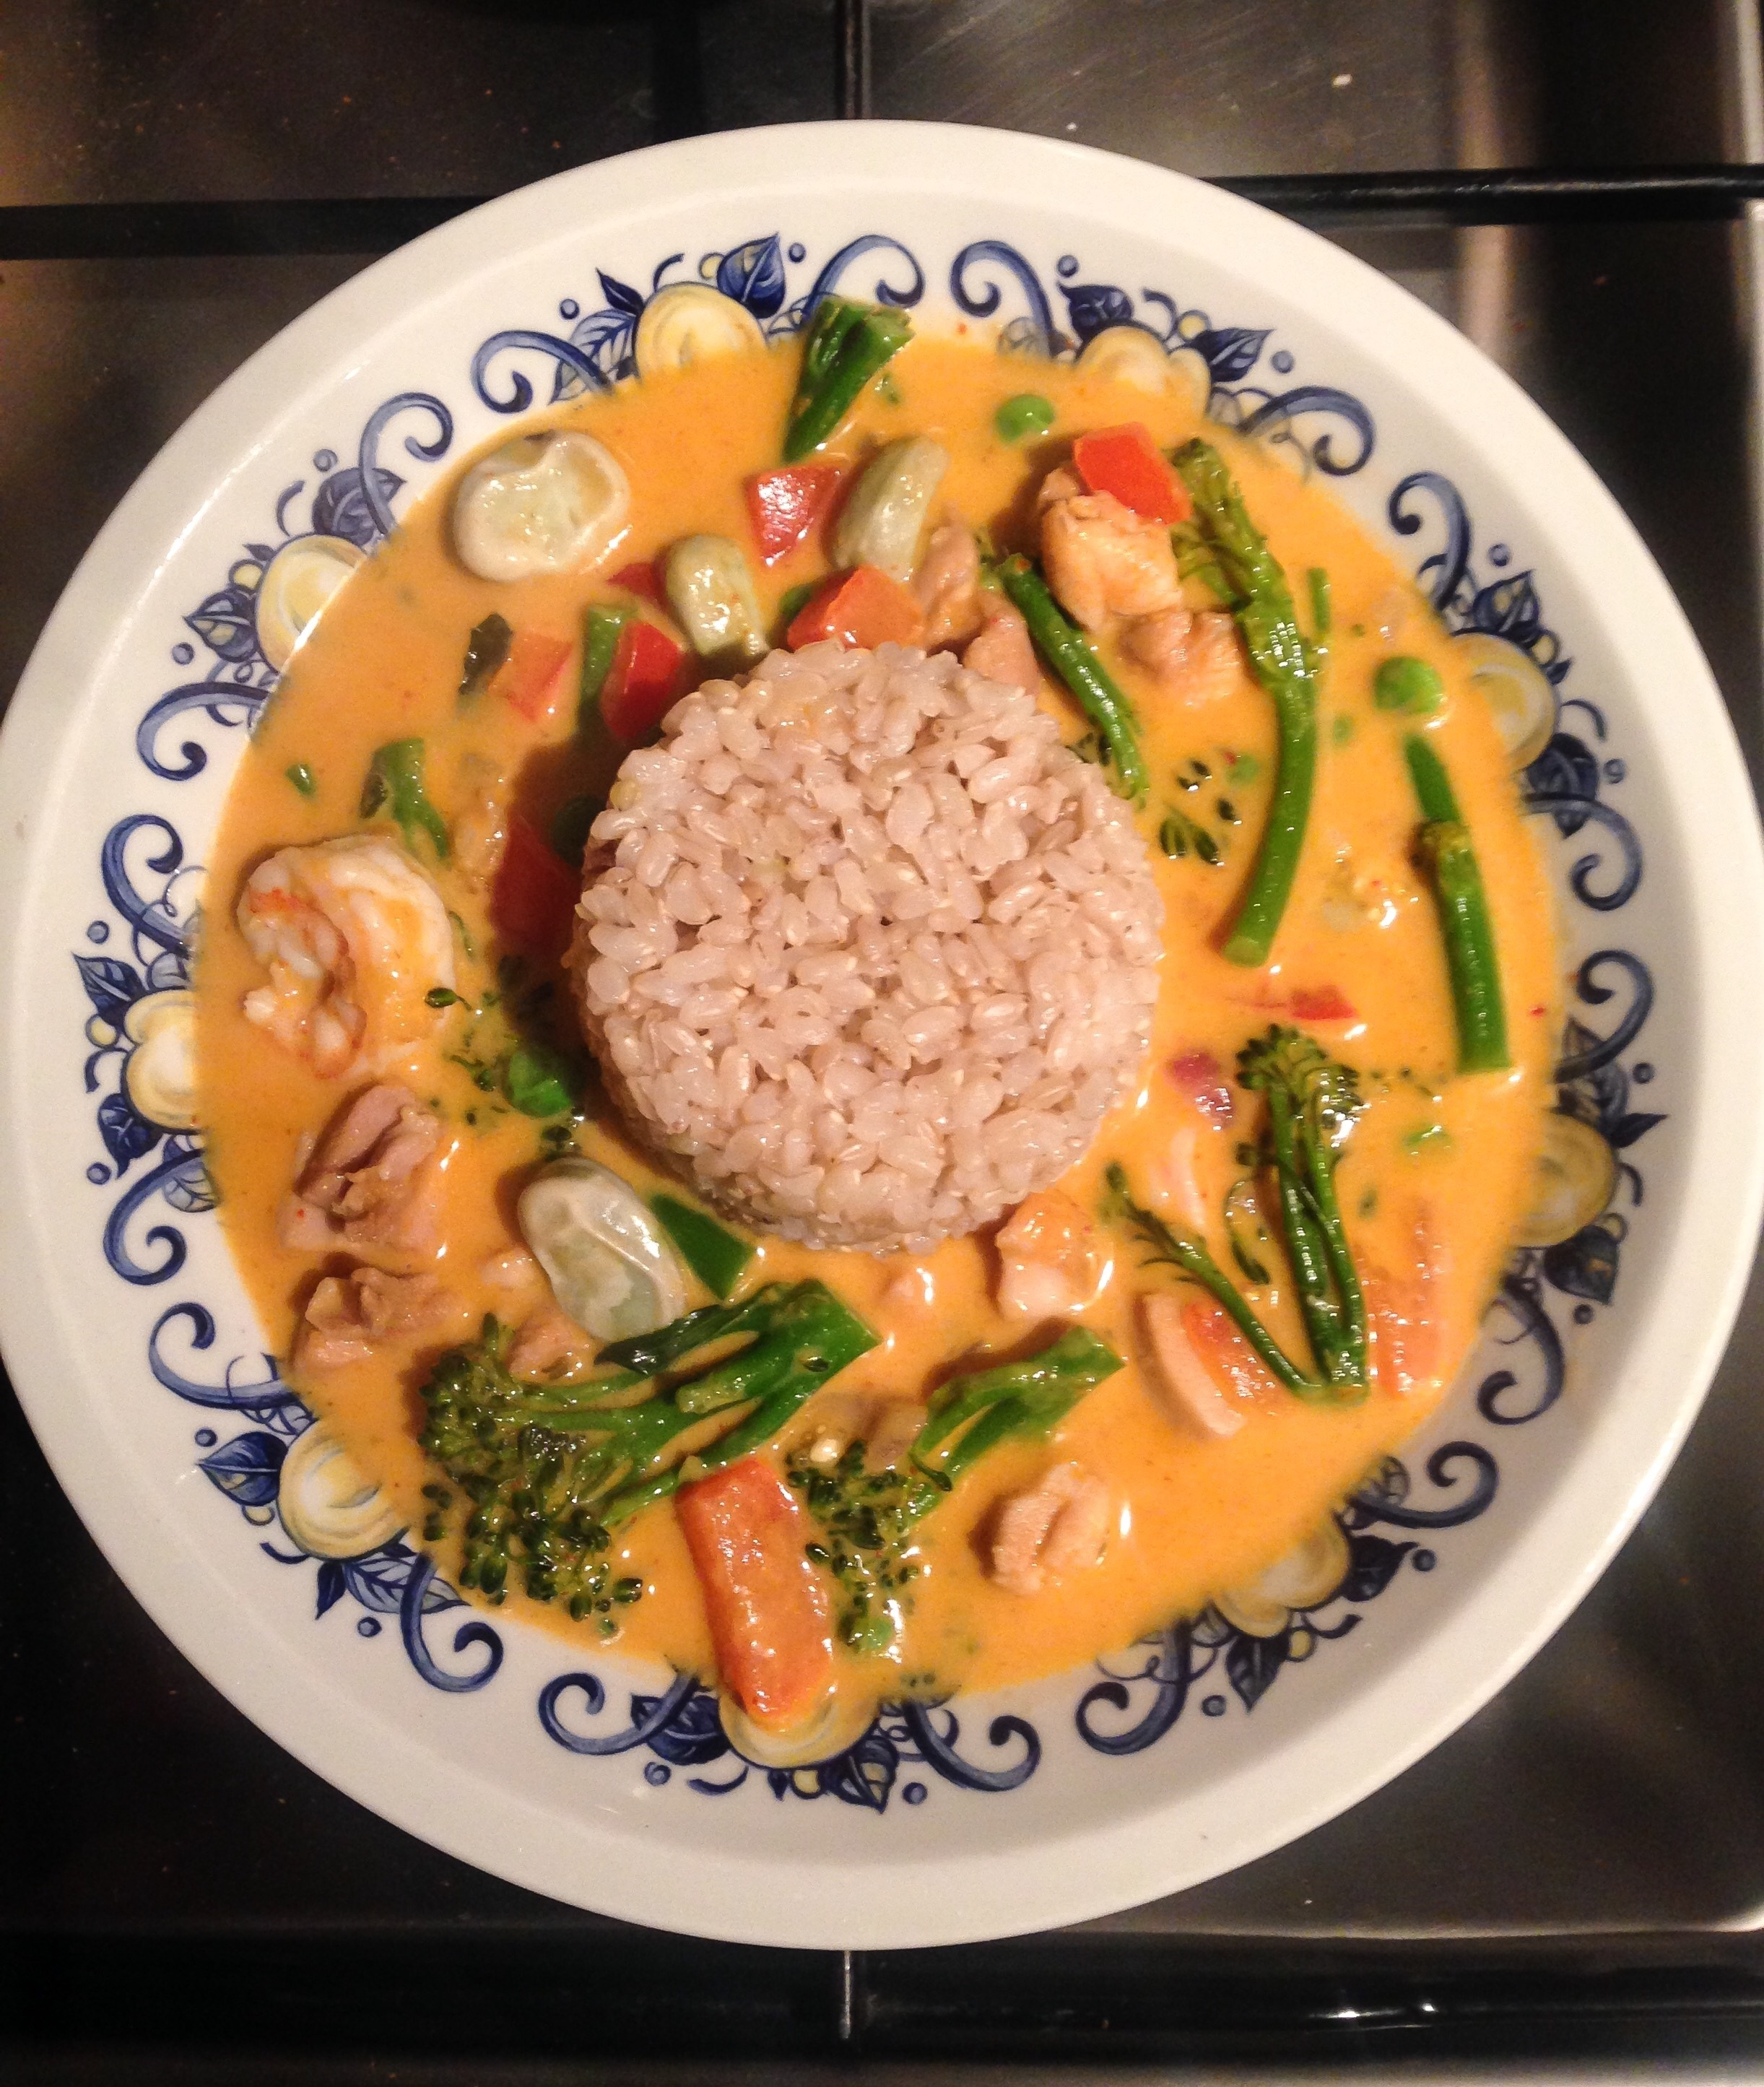 Easy Thaise Rode Curry met Kipdijfilet & Gamba's